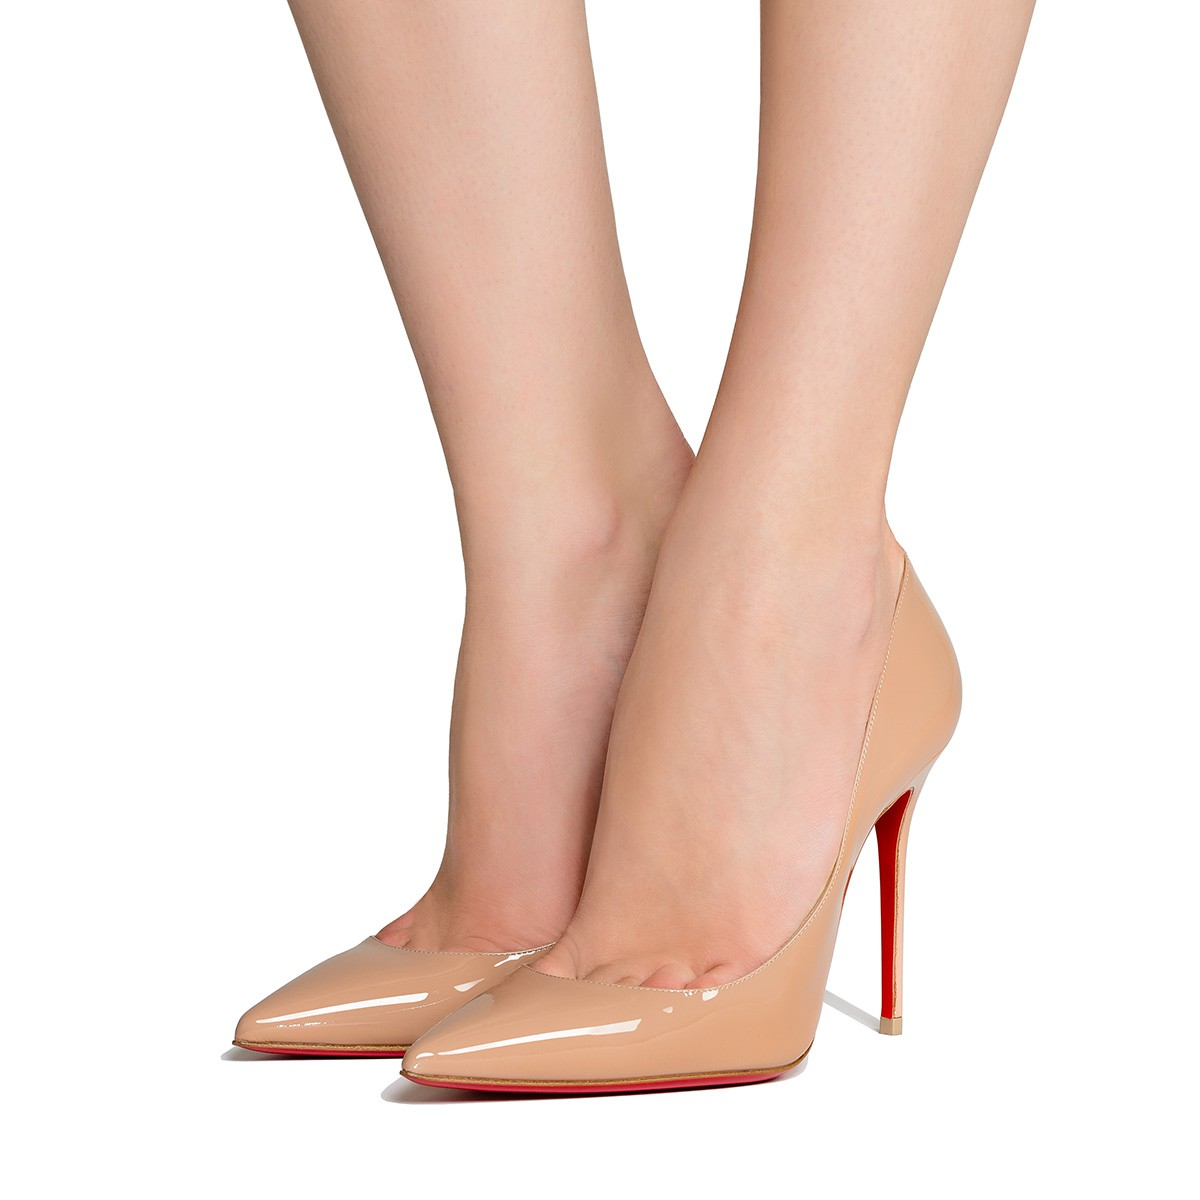 louboutin Simple Pump nudo